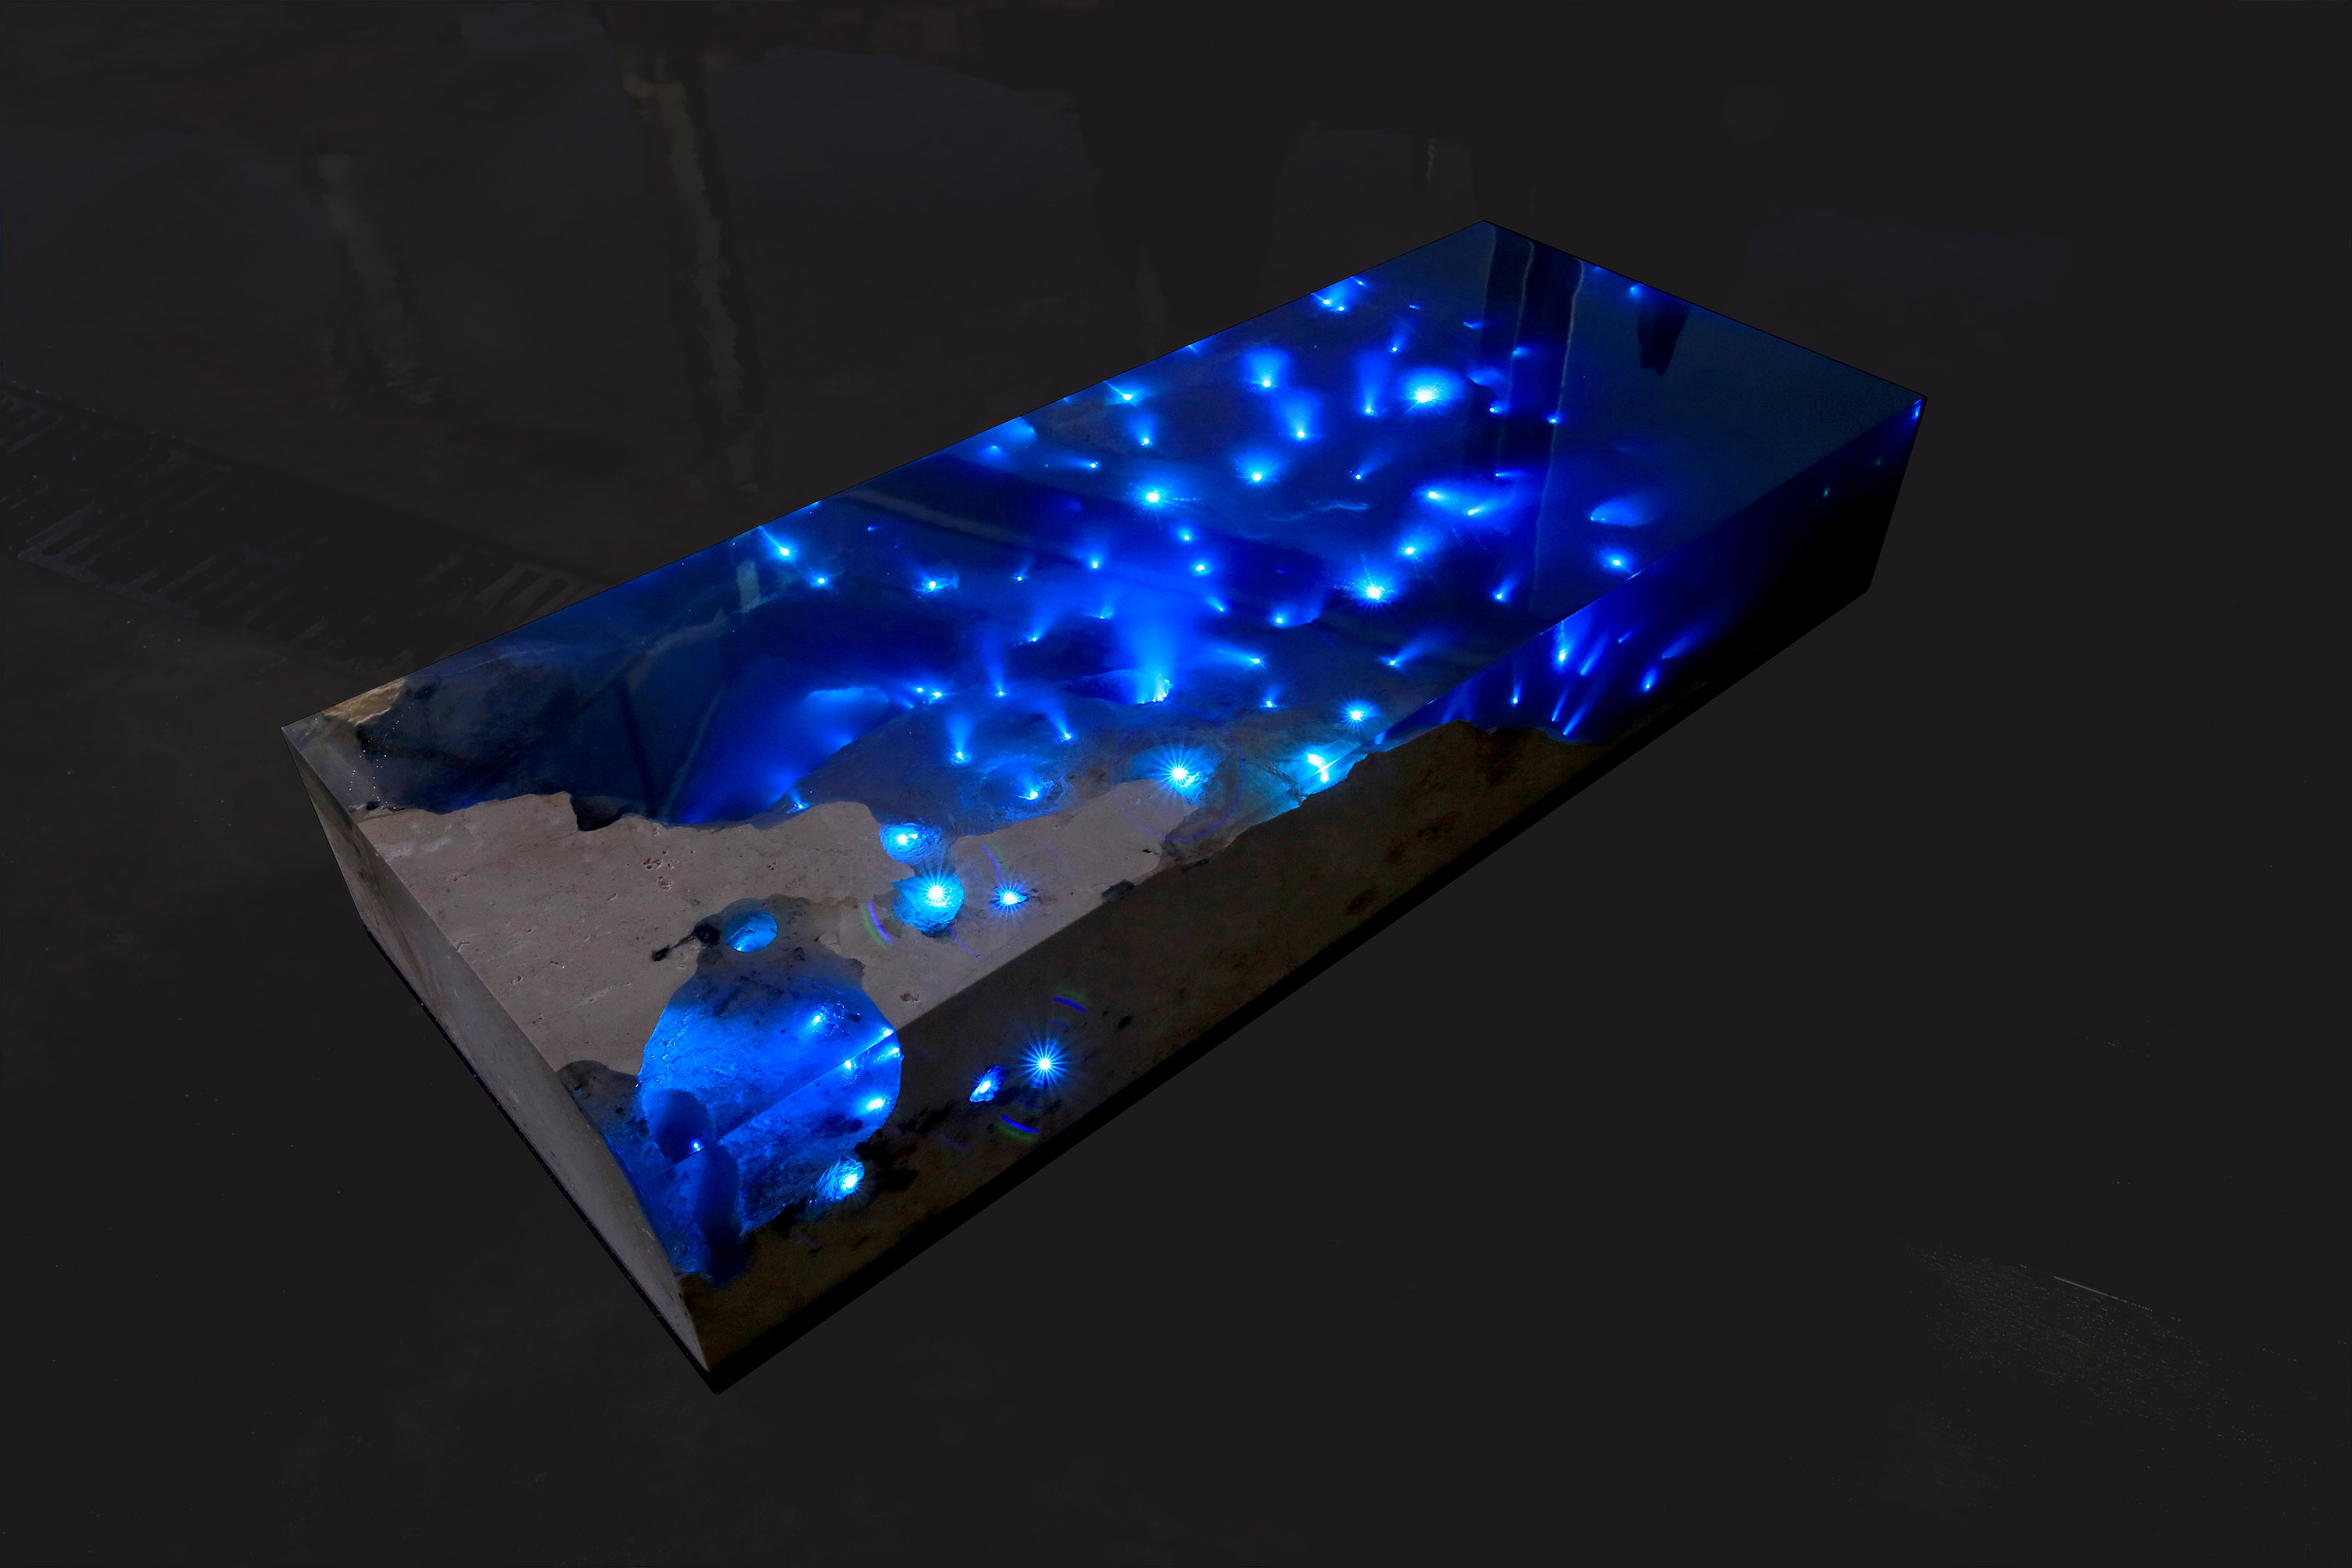 Seaside Cove or Starry Sky This Coffee Table Is Both Creators